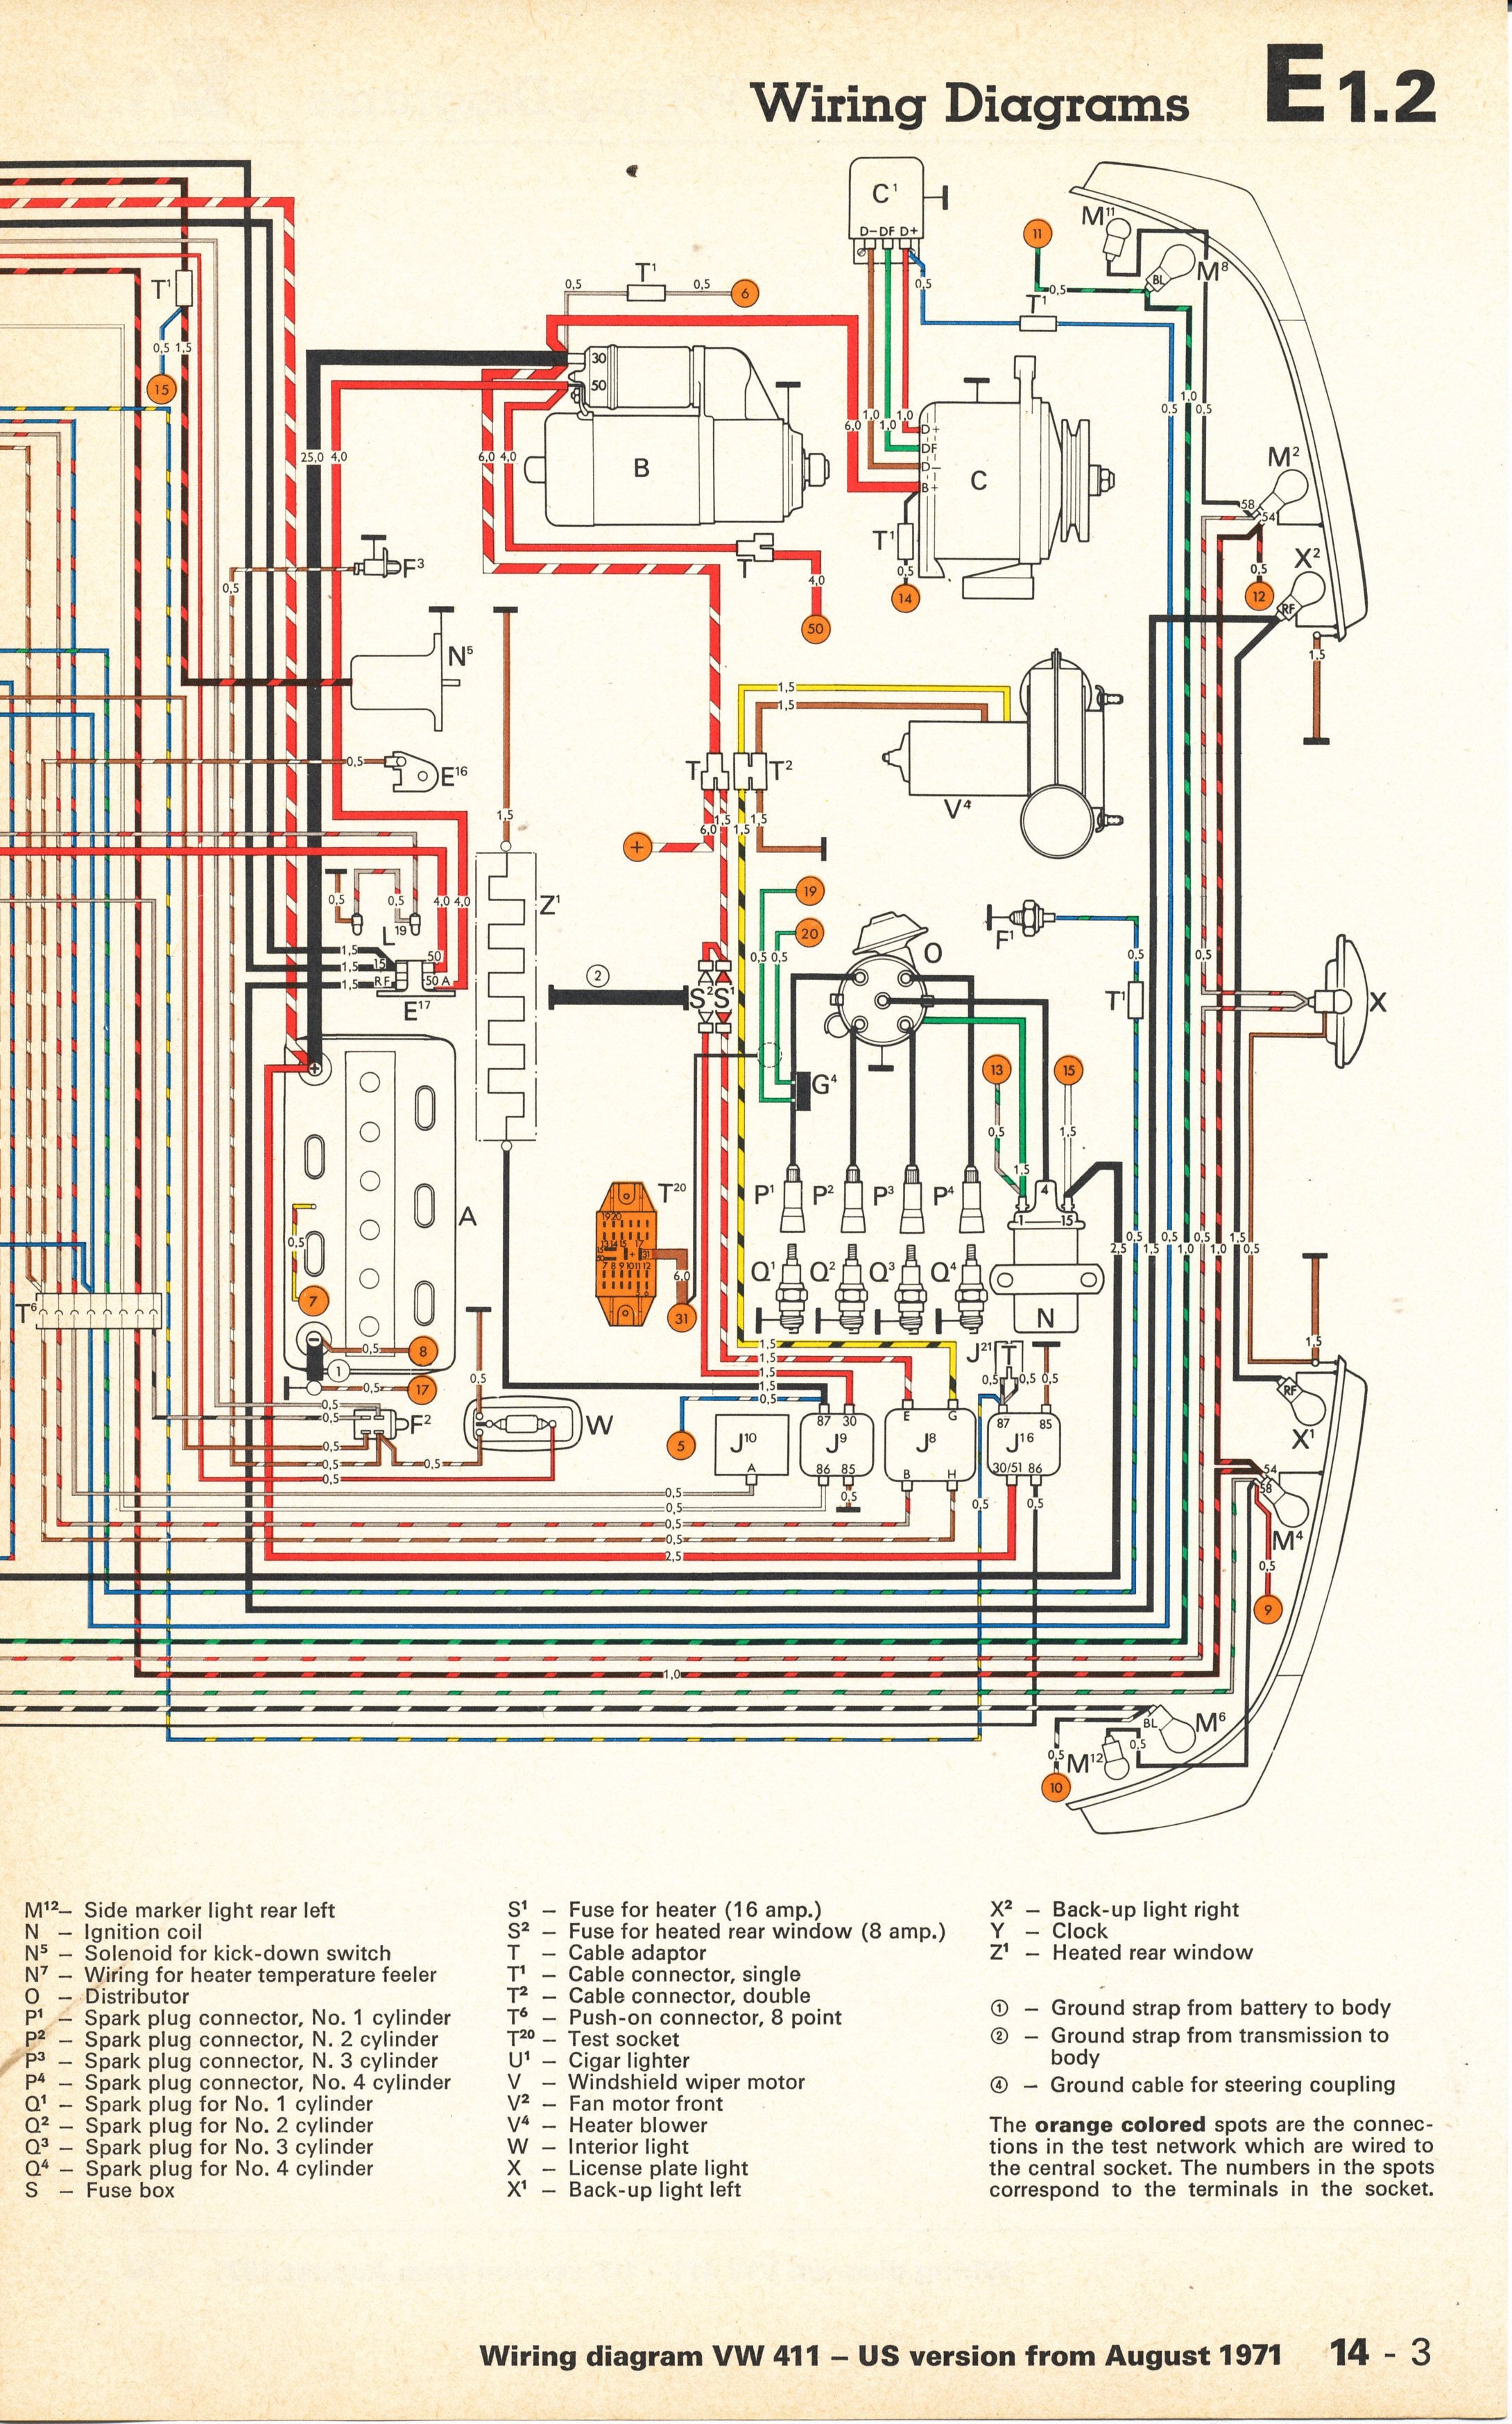 bmw r1100rt wiring diagrams context diagram for library system, Wiring diagram